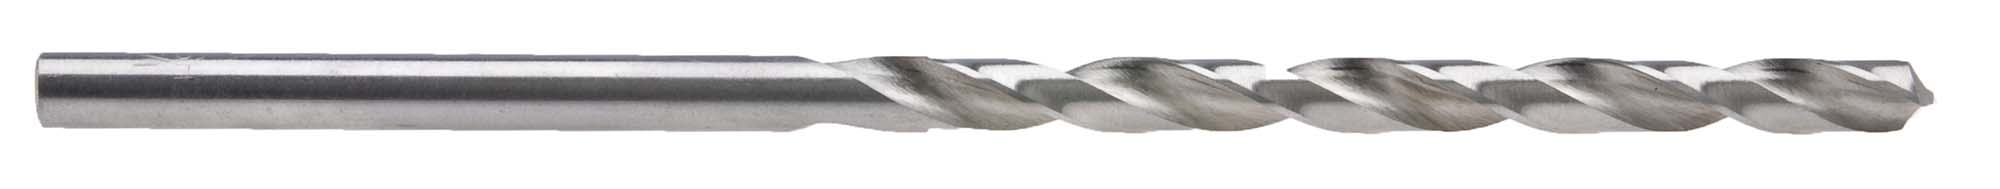 "R (.339"") ""Taper Length"" Long Straight Shank Drill Bit, High Speed Steel"